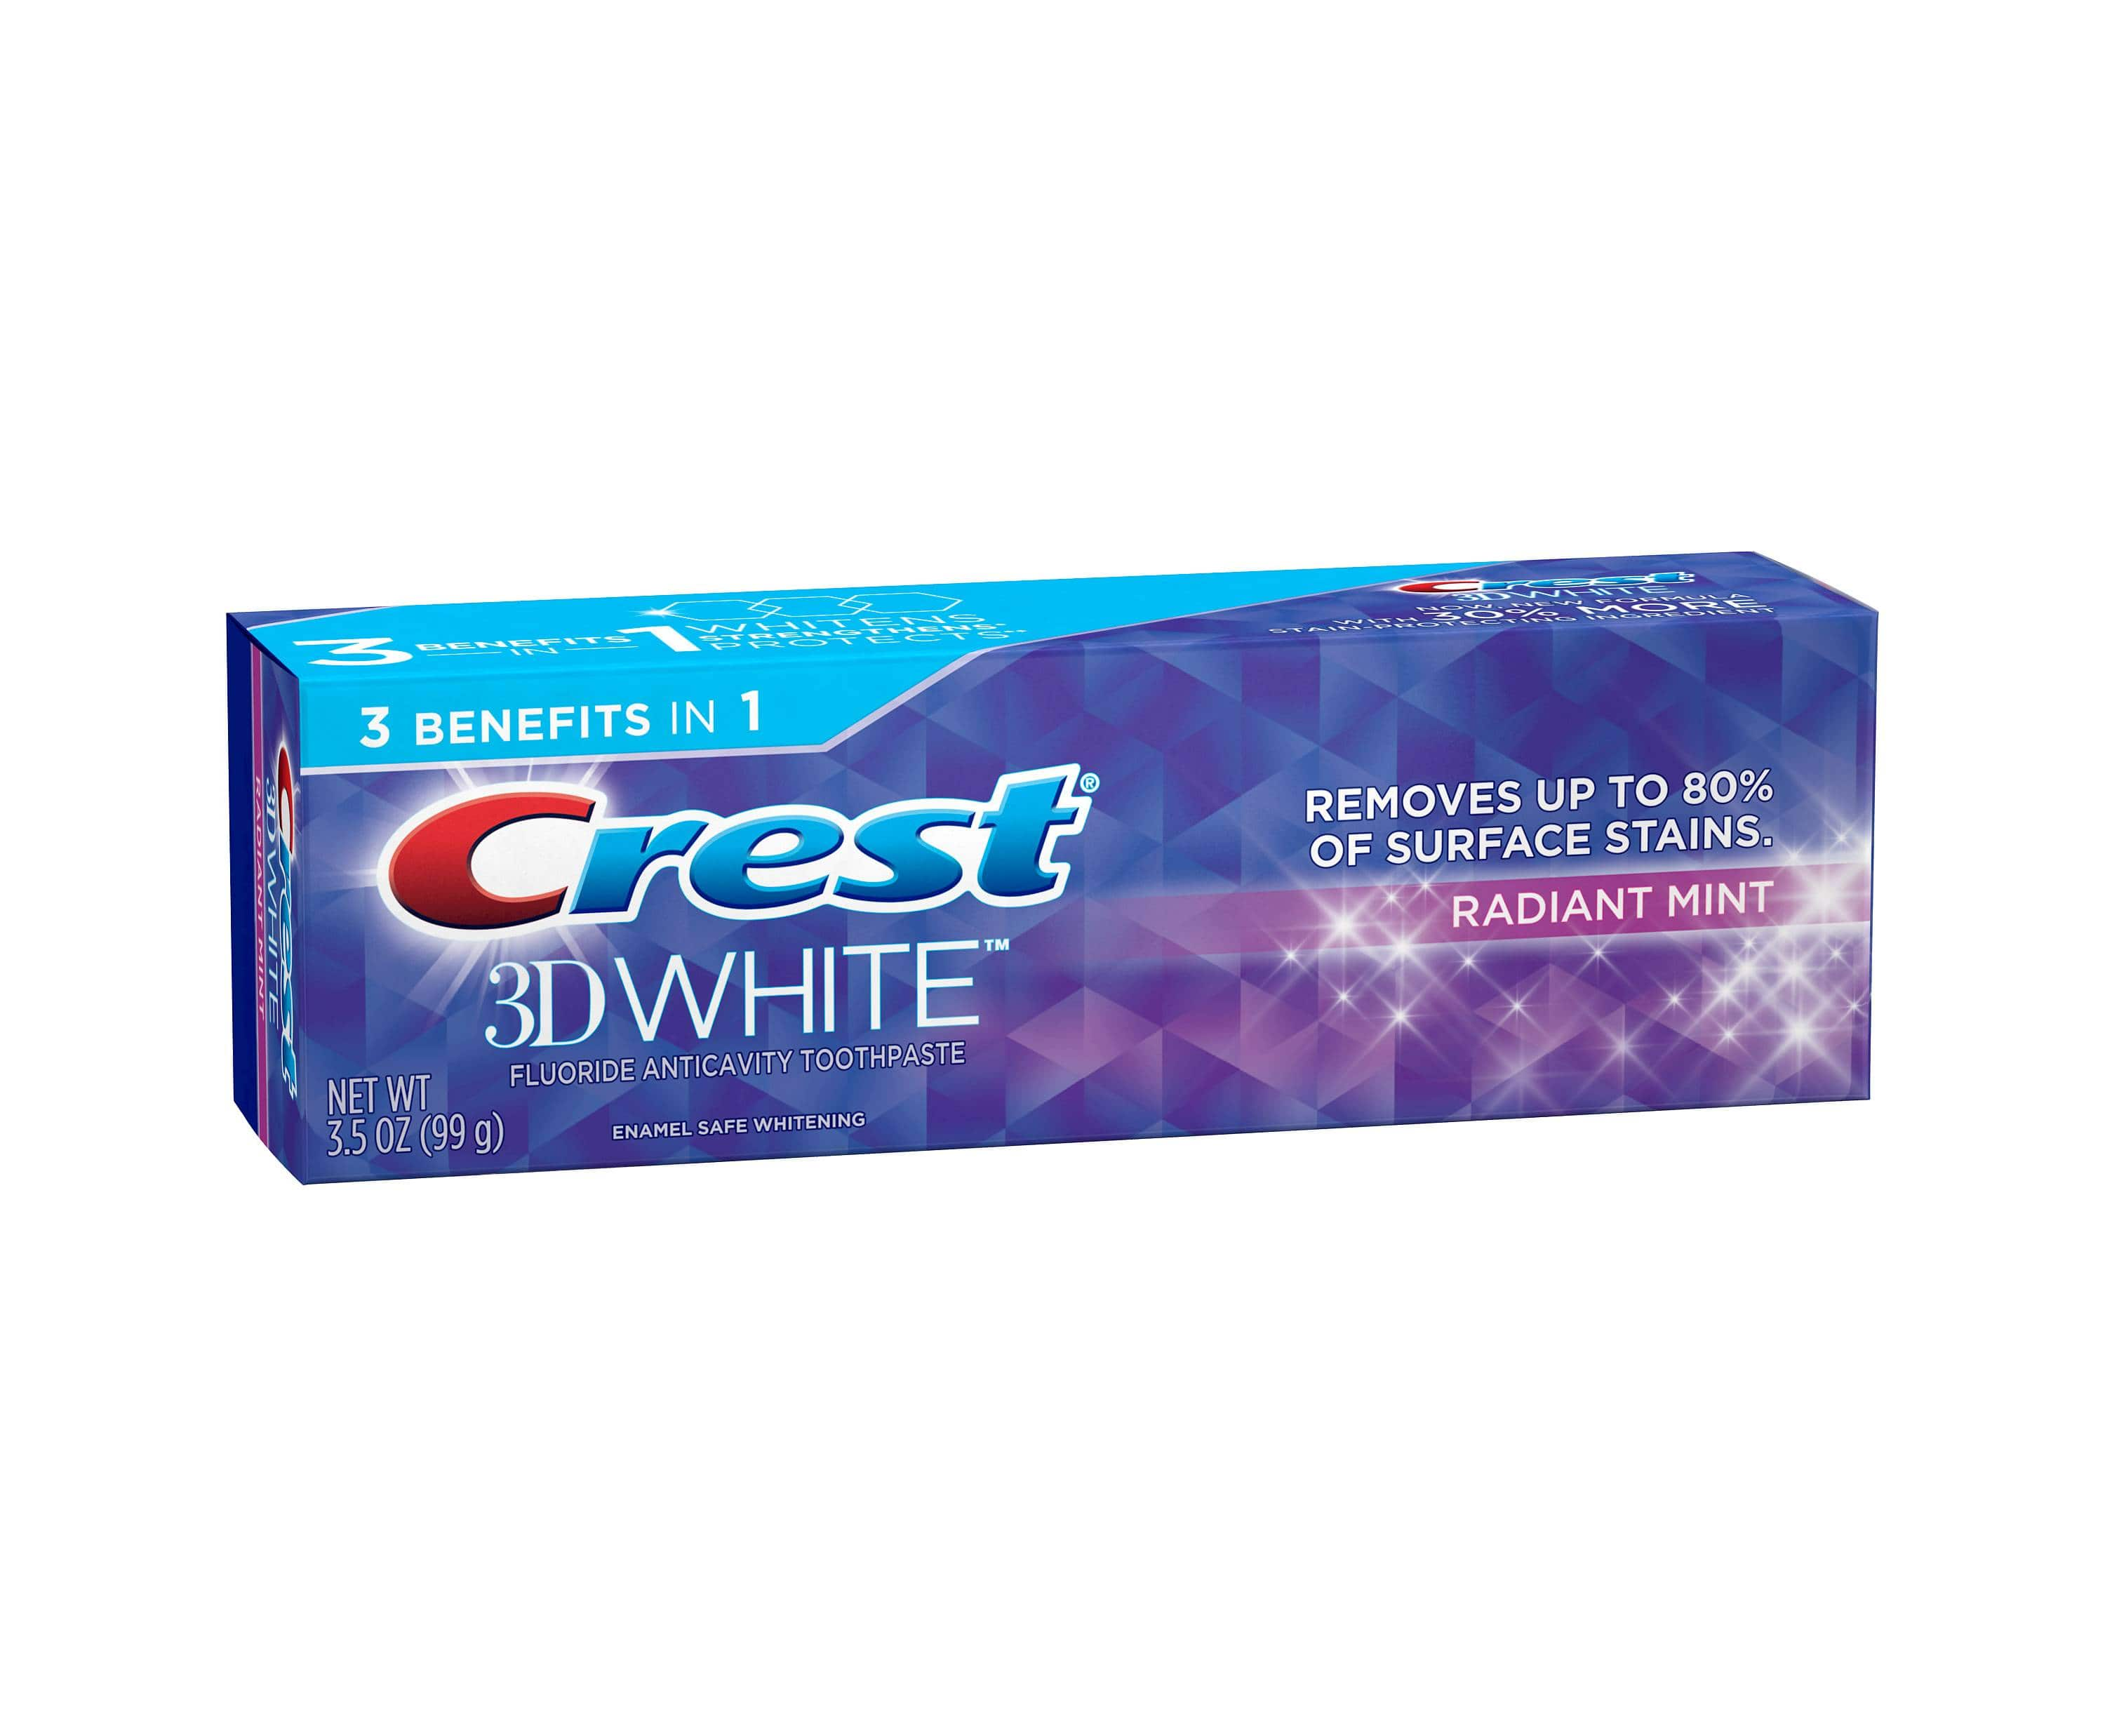 Crest 3D White Whitening Toothpaste Radiant Mint $0.99 AC